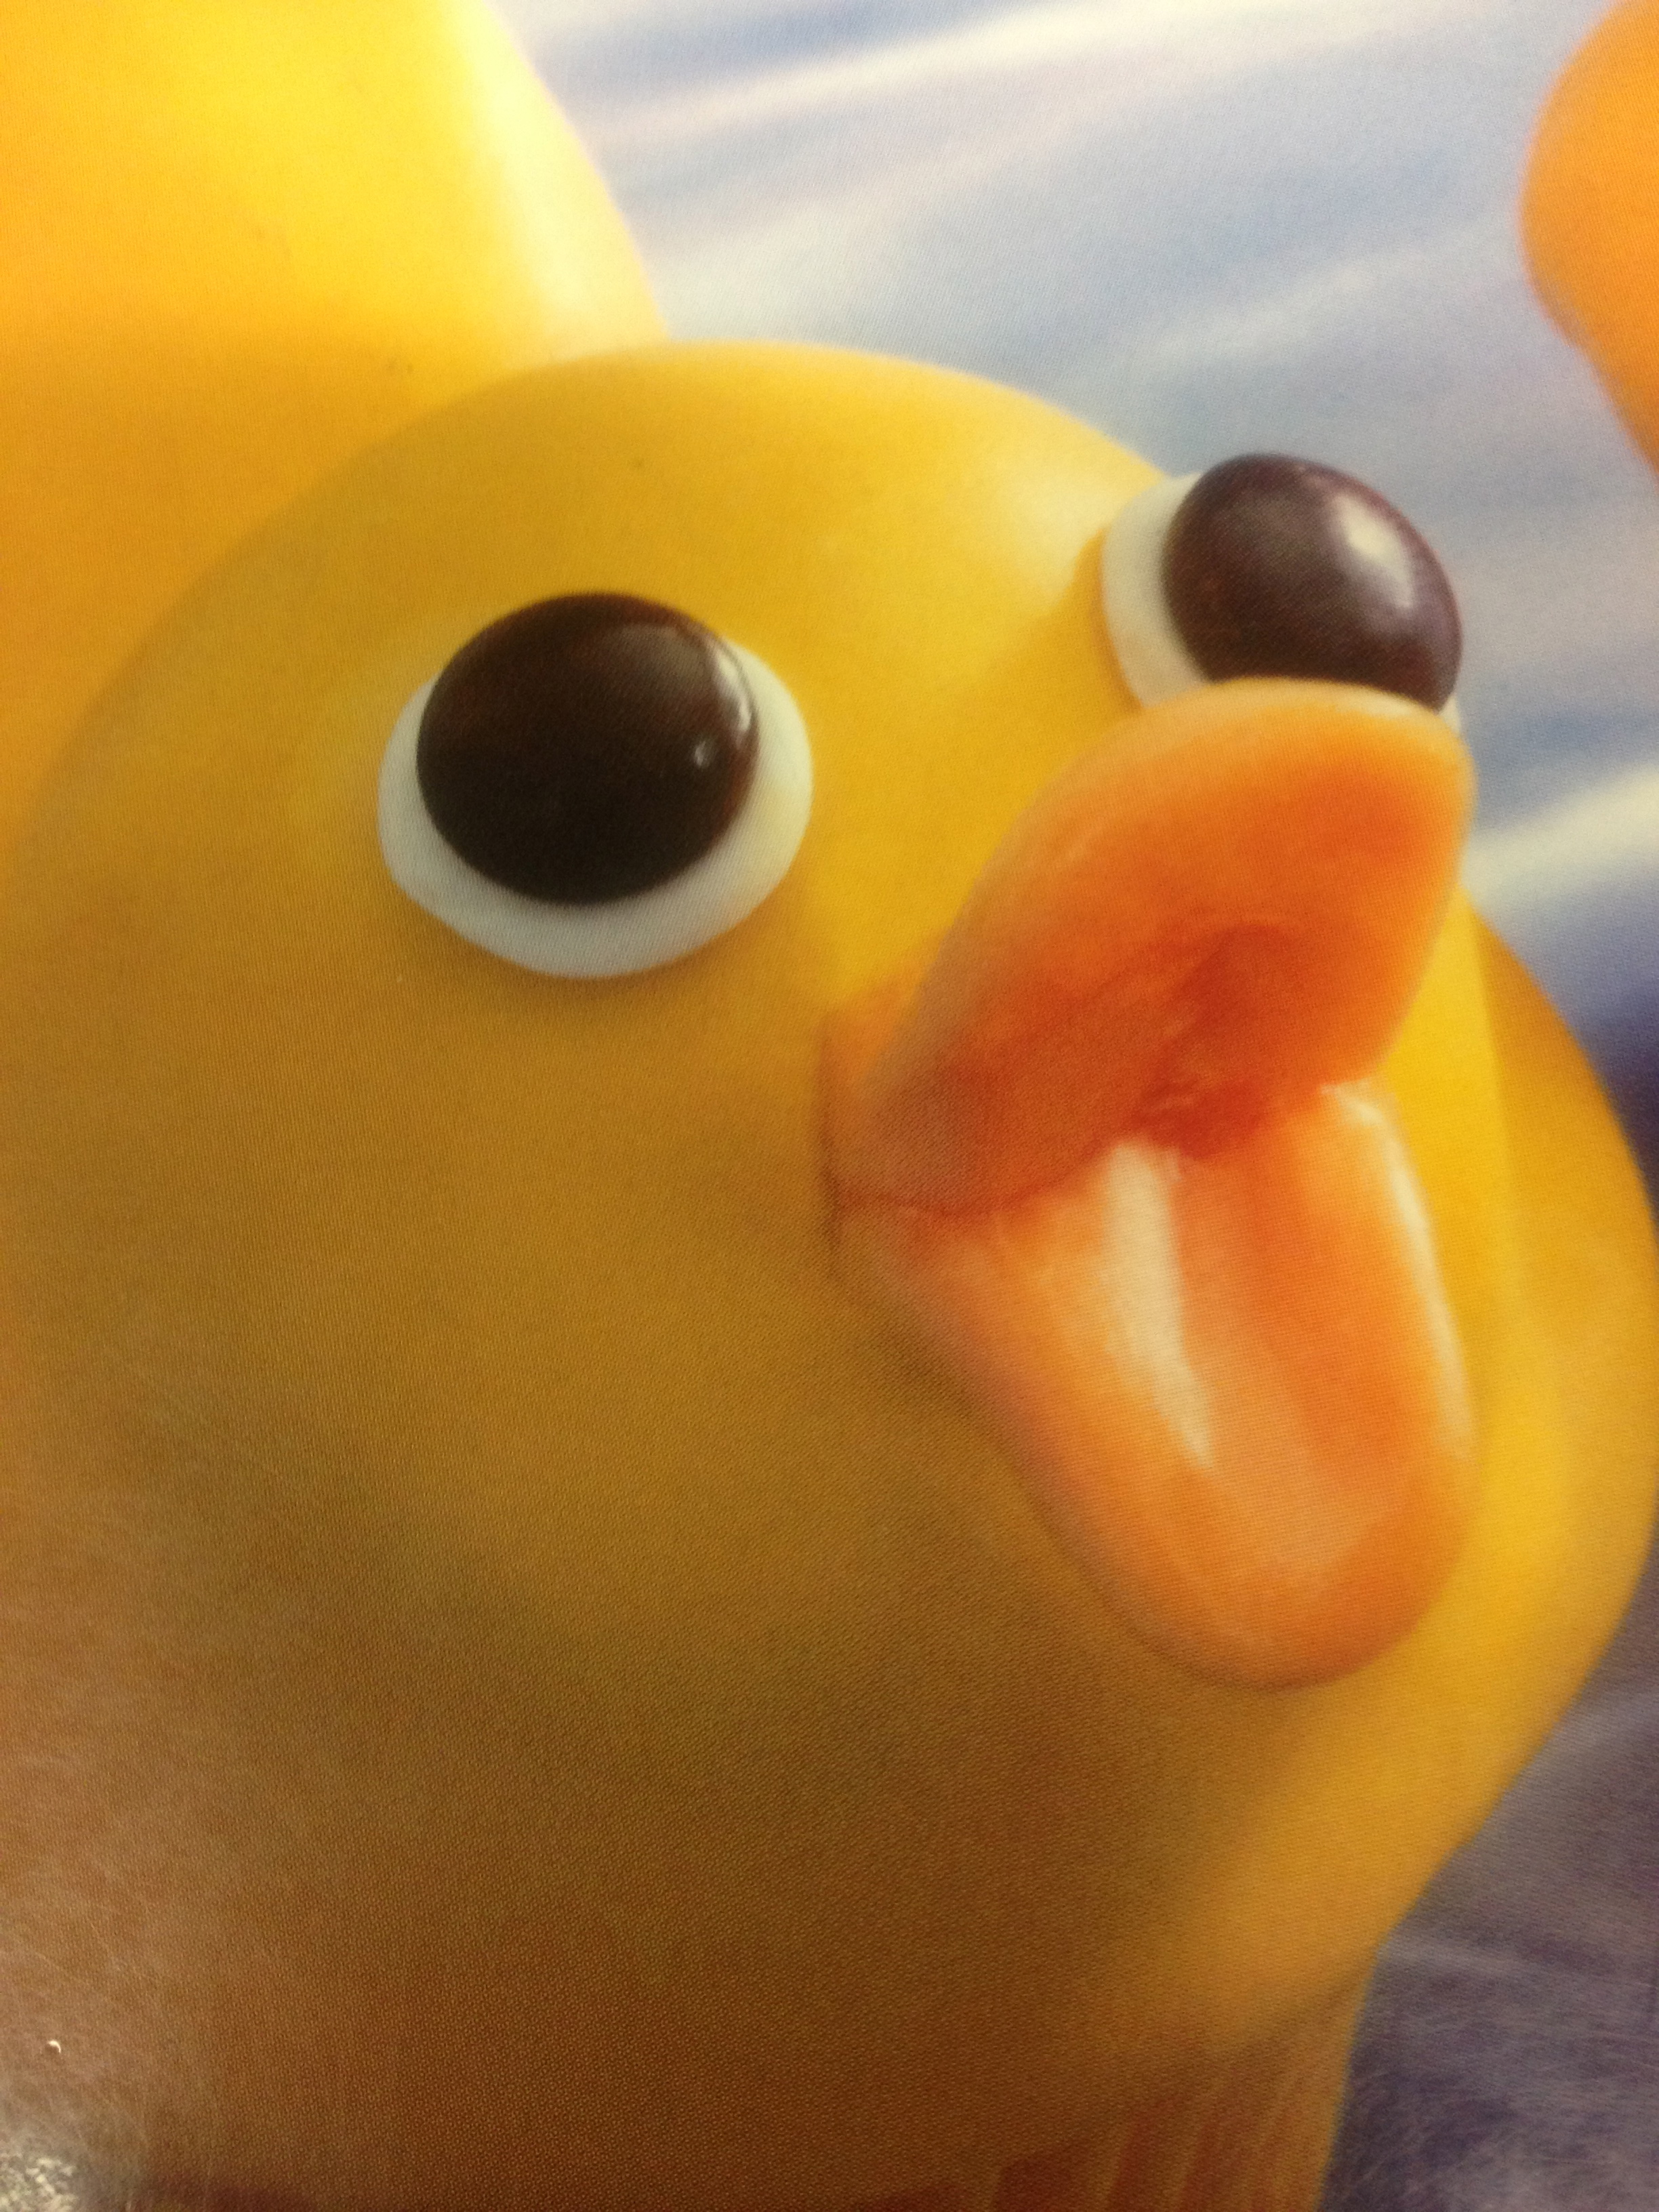 Rubber Ducky Squeak | Reaction Images | Know Your Meme